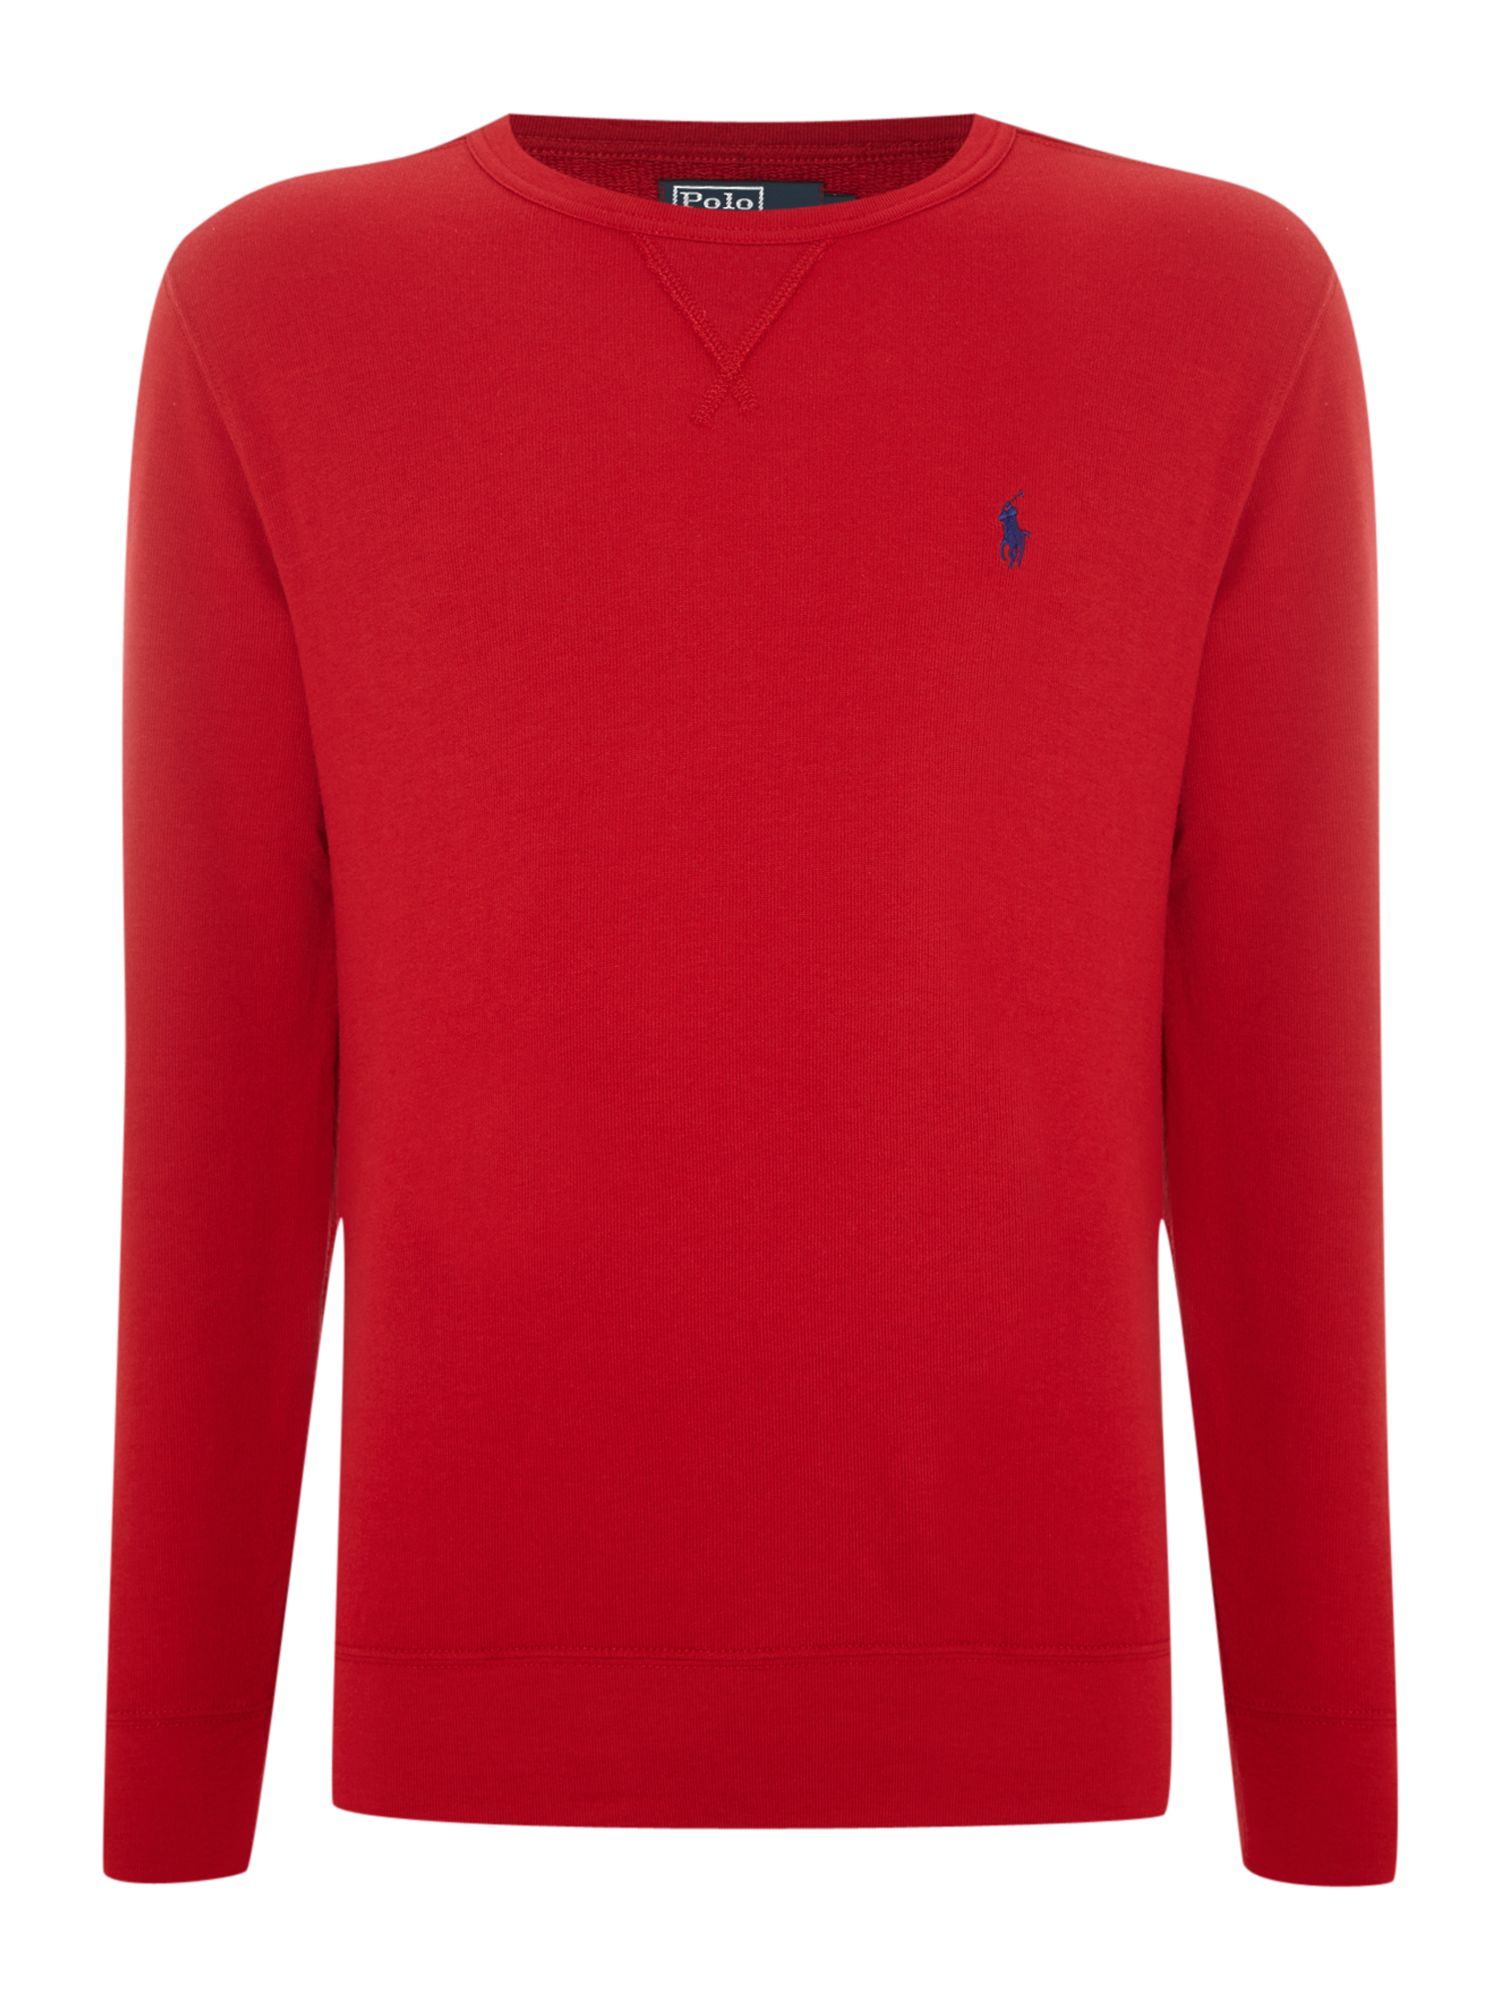 Classic atlantic terry crew neck sweatshirt